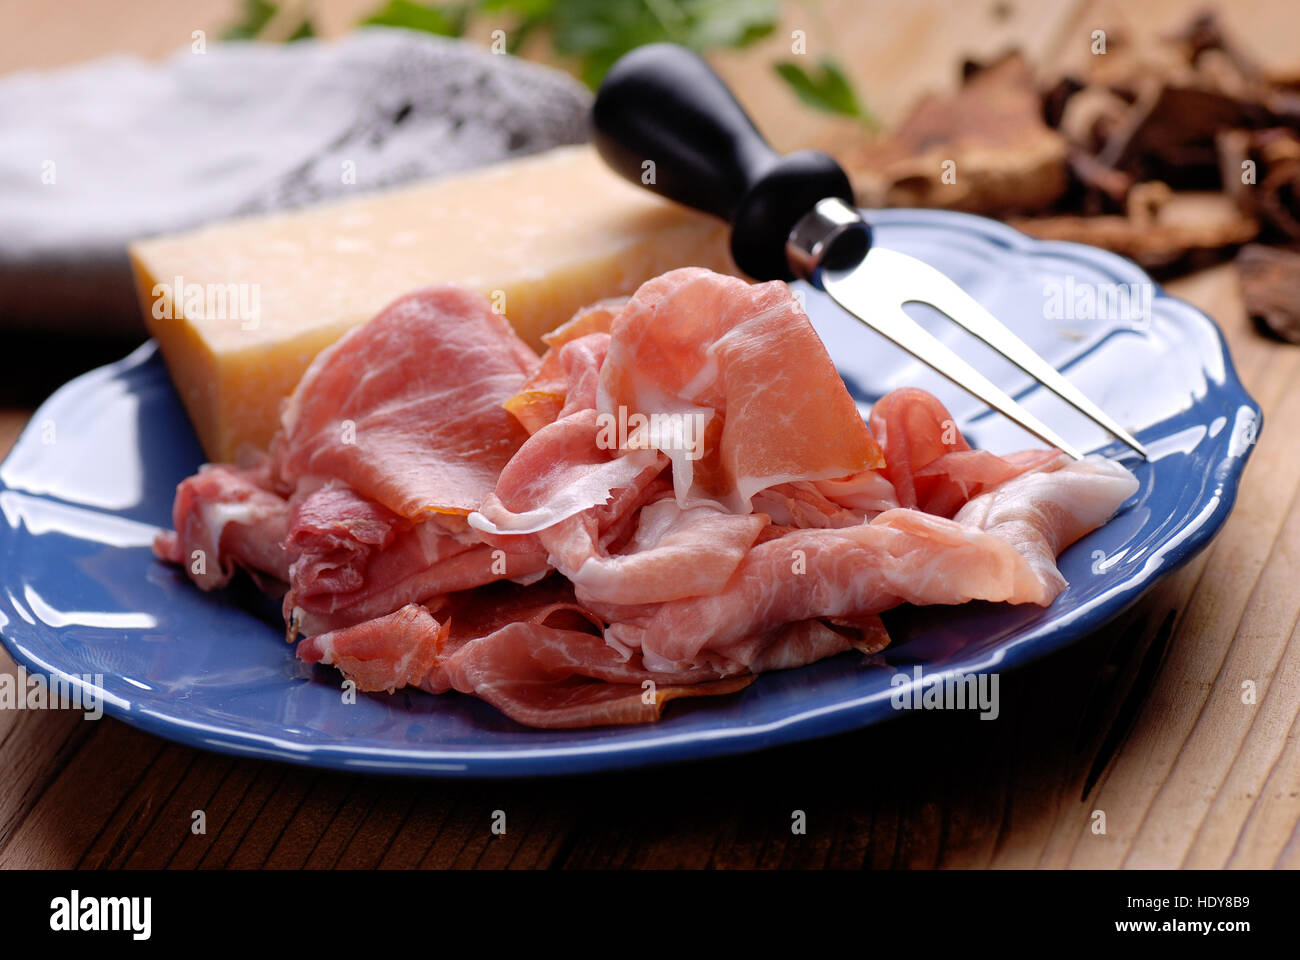 Parma ham and Parmesan cheese on blue plate - Stock Image